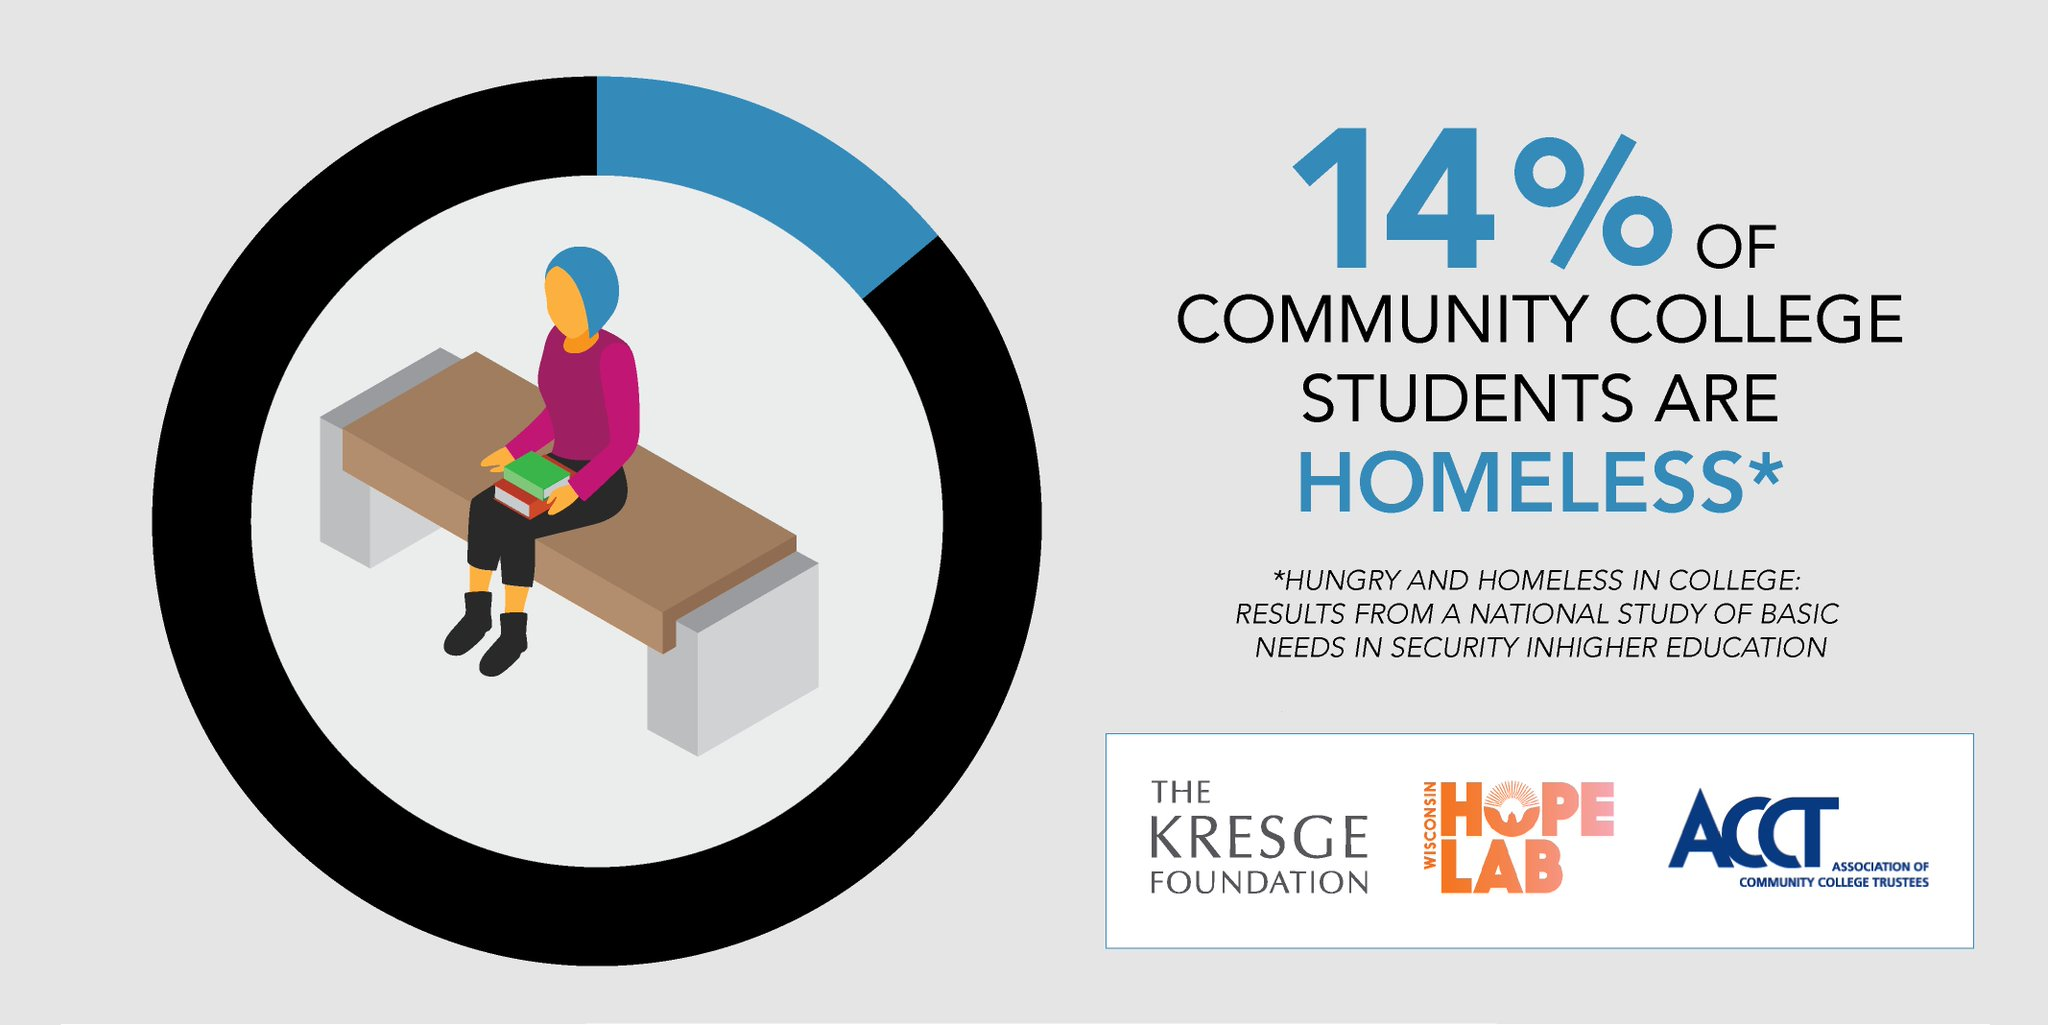 Biggest survey ever of #comm_college basic needs finds 14% students are homeless. @ACCT @wihopelab. #HungerTownhall https://t.co/oBmgYaVA2B https://t.co/E54bOpMuKl